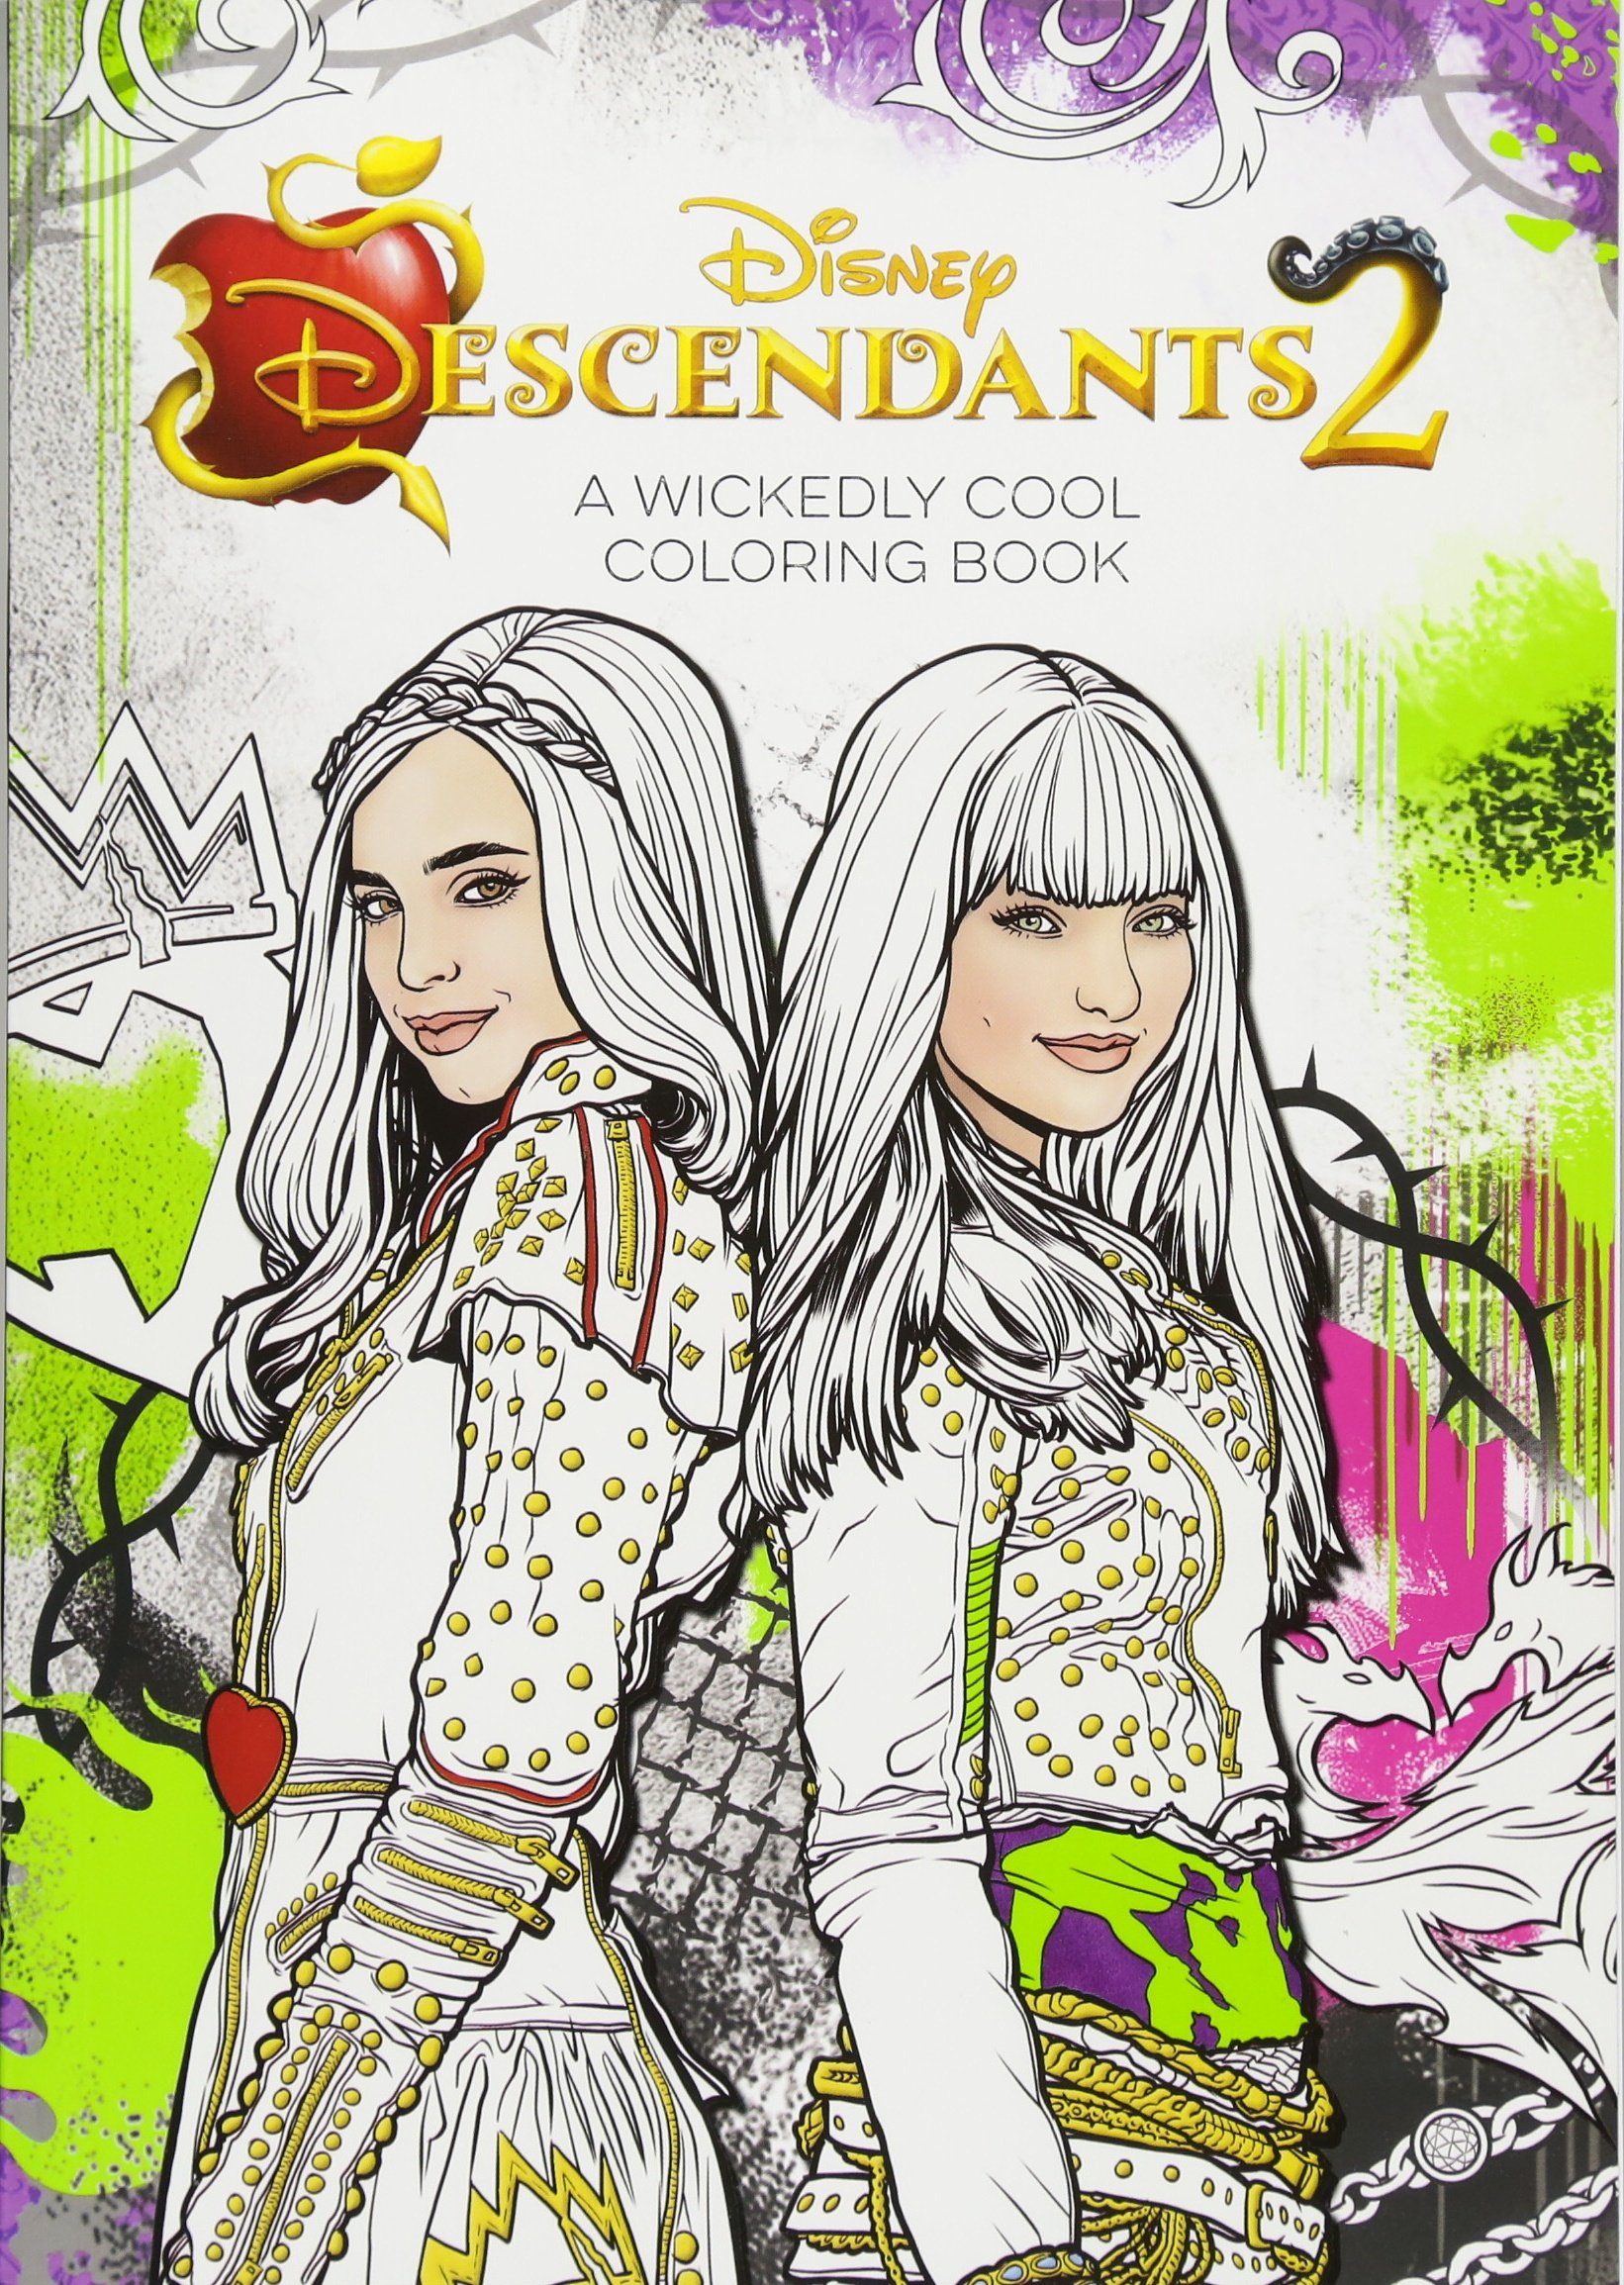 descendants-2-a-wickedly-cool-coloring-book-art-of-coloring